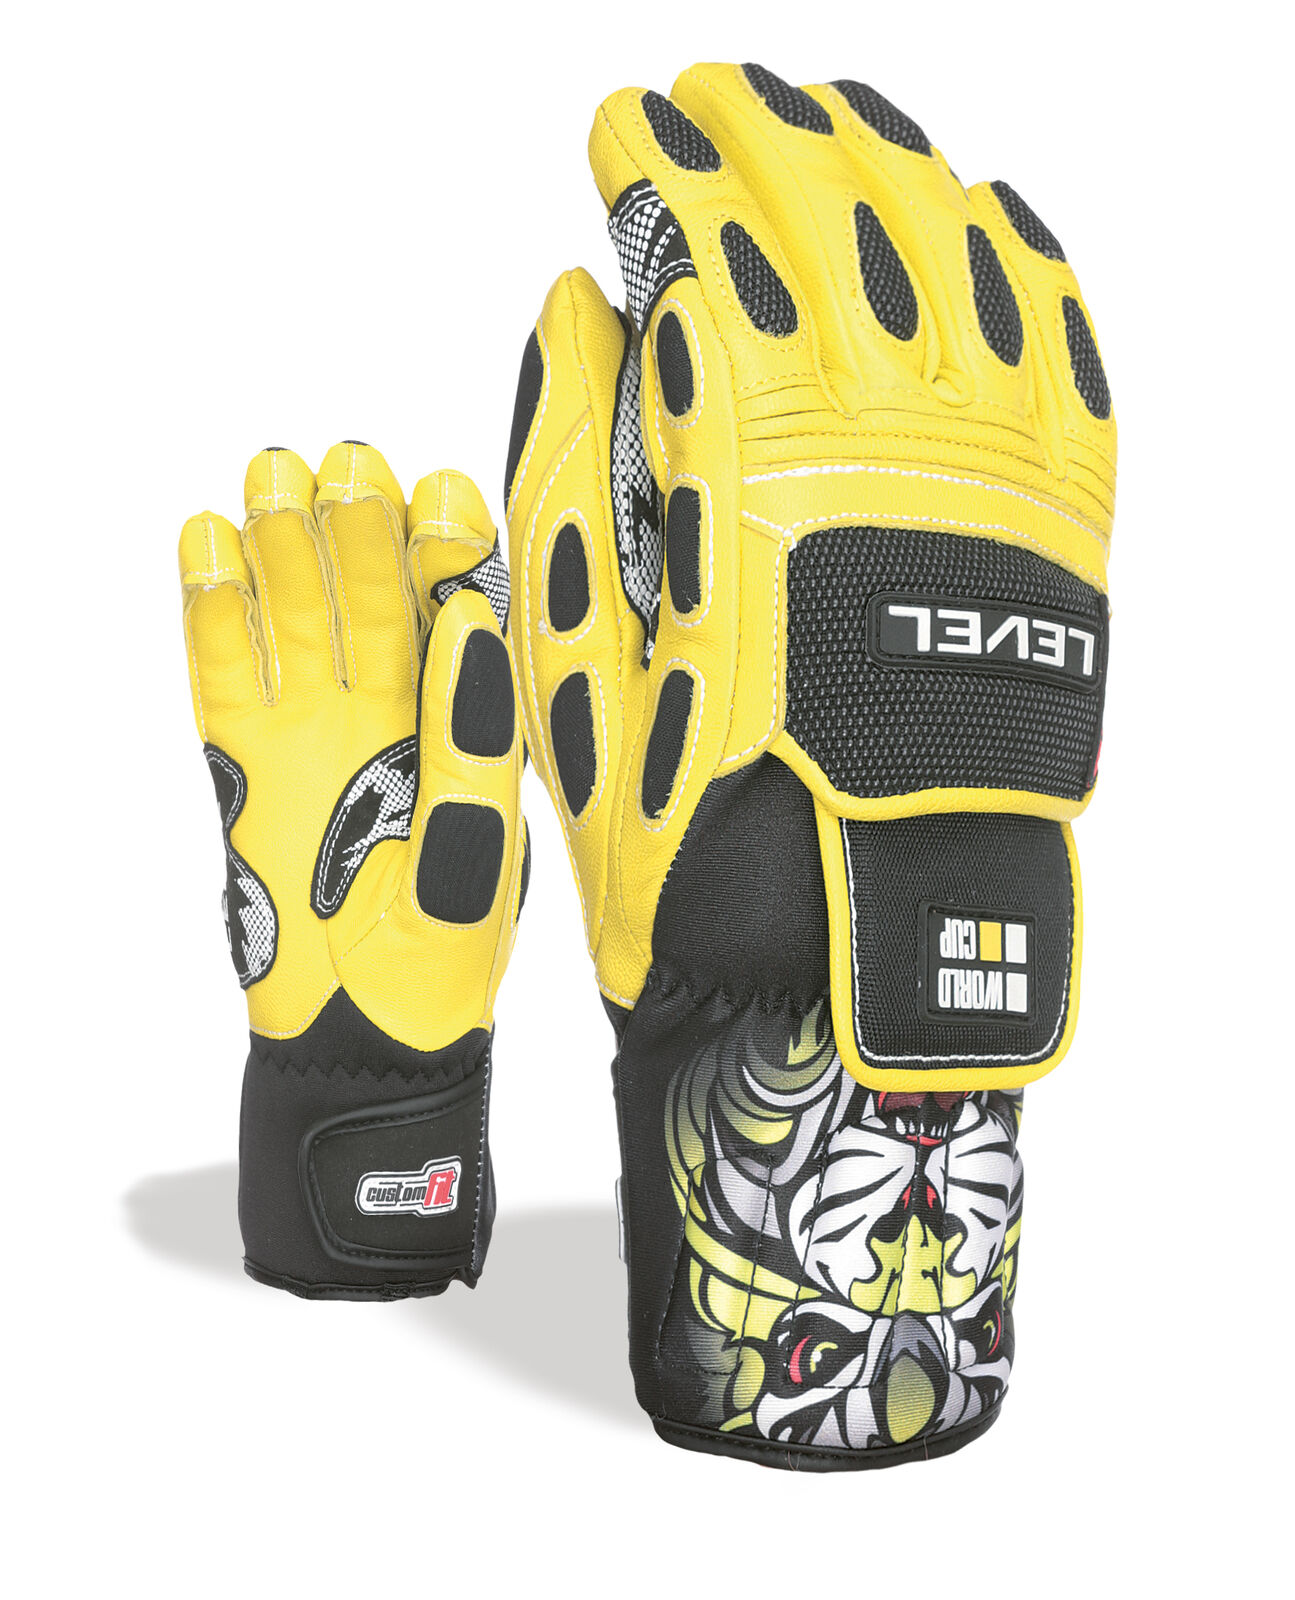 Level Guantes Worldcup Jr Cf Amarillo Impermeable Transpirable Cálidos